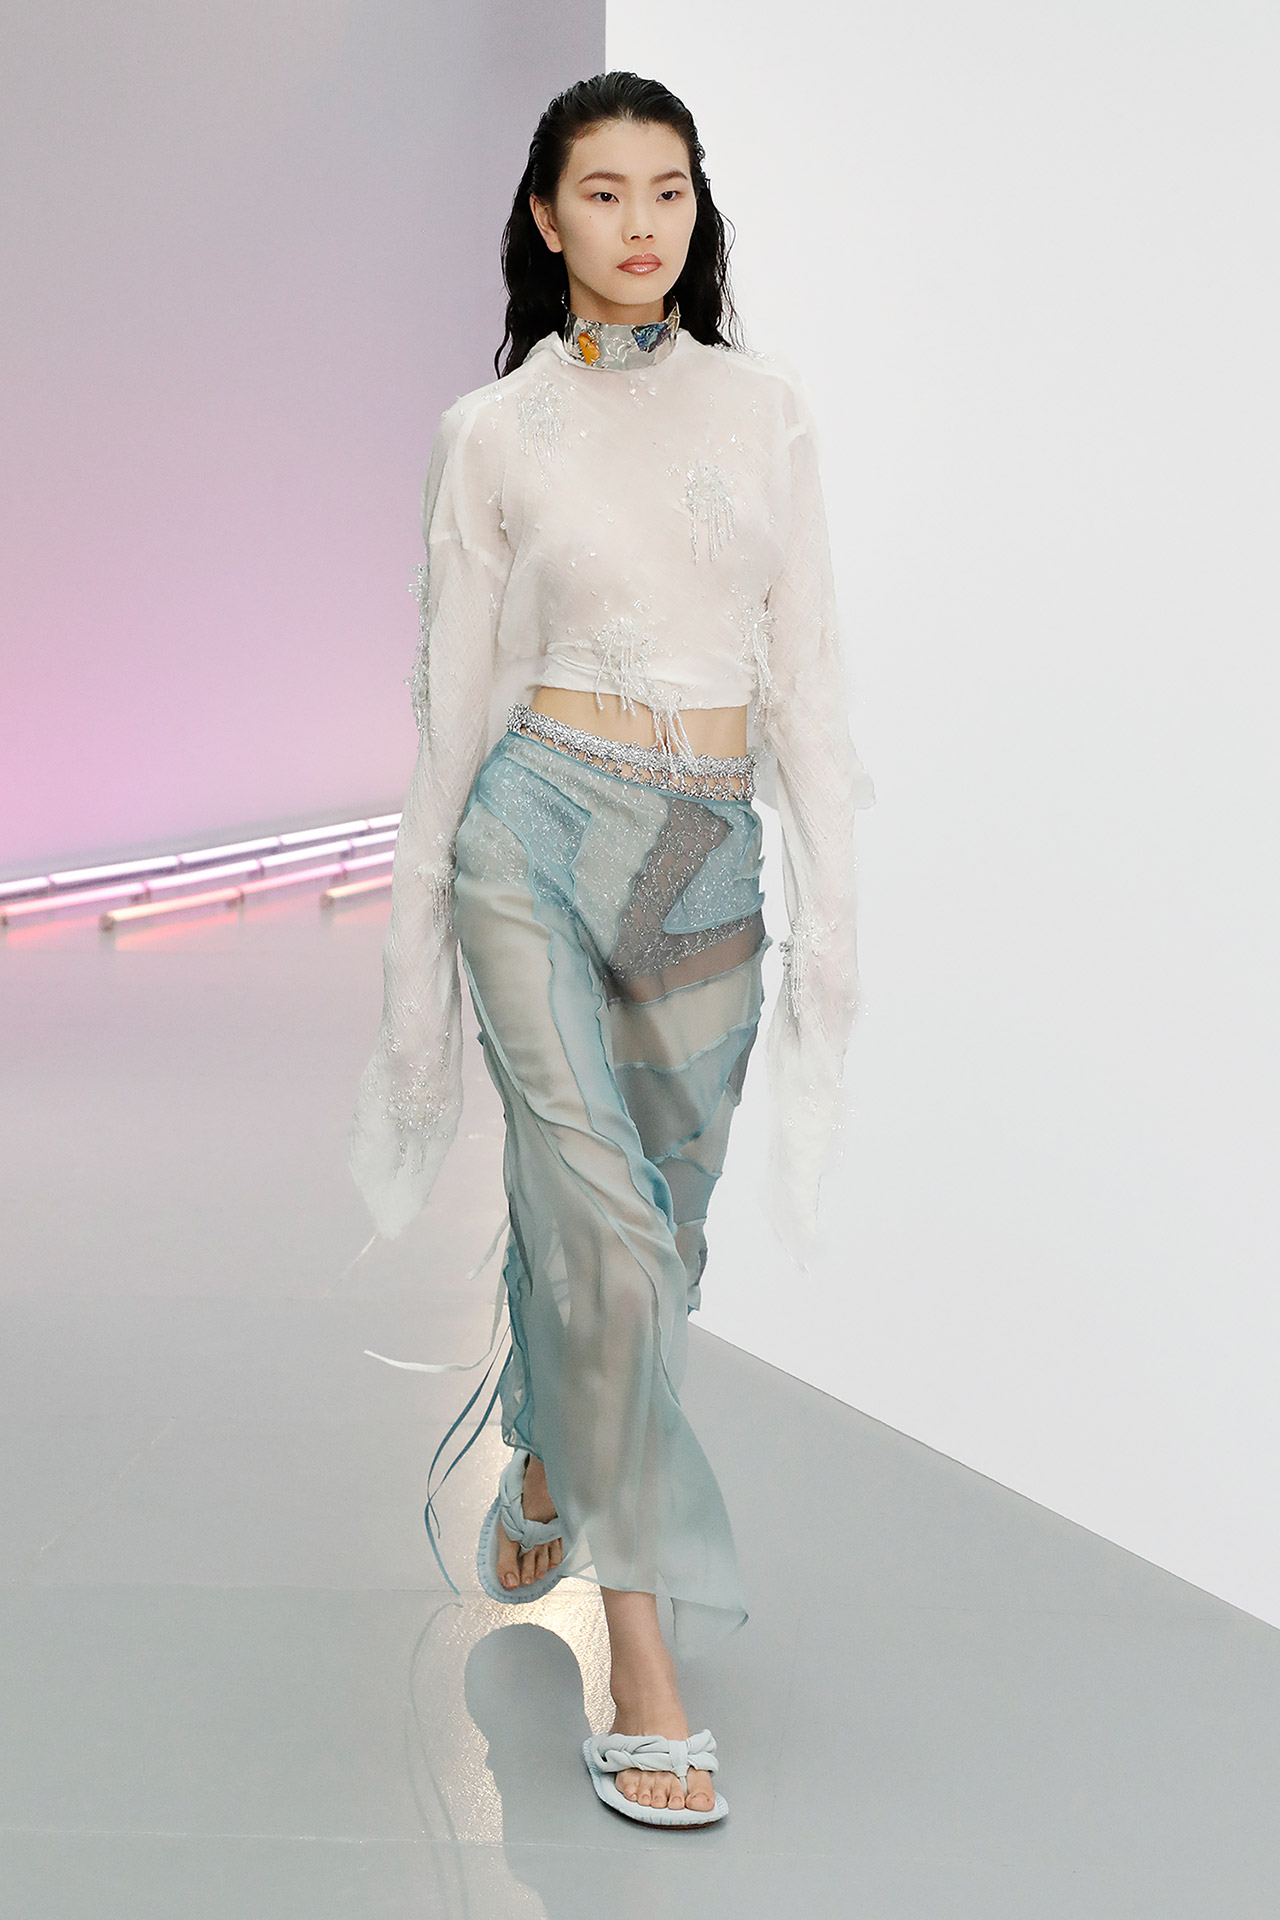 Look Fall/Winter 2020, image 15